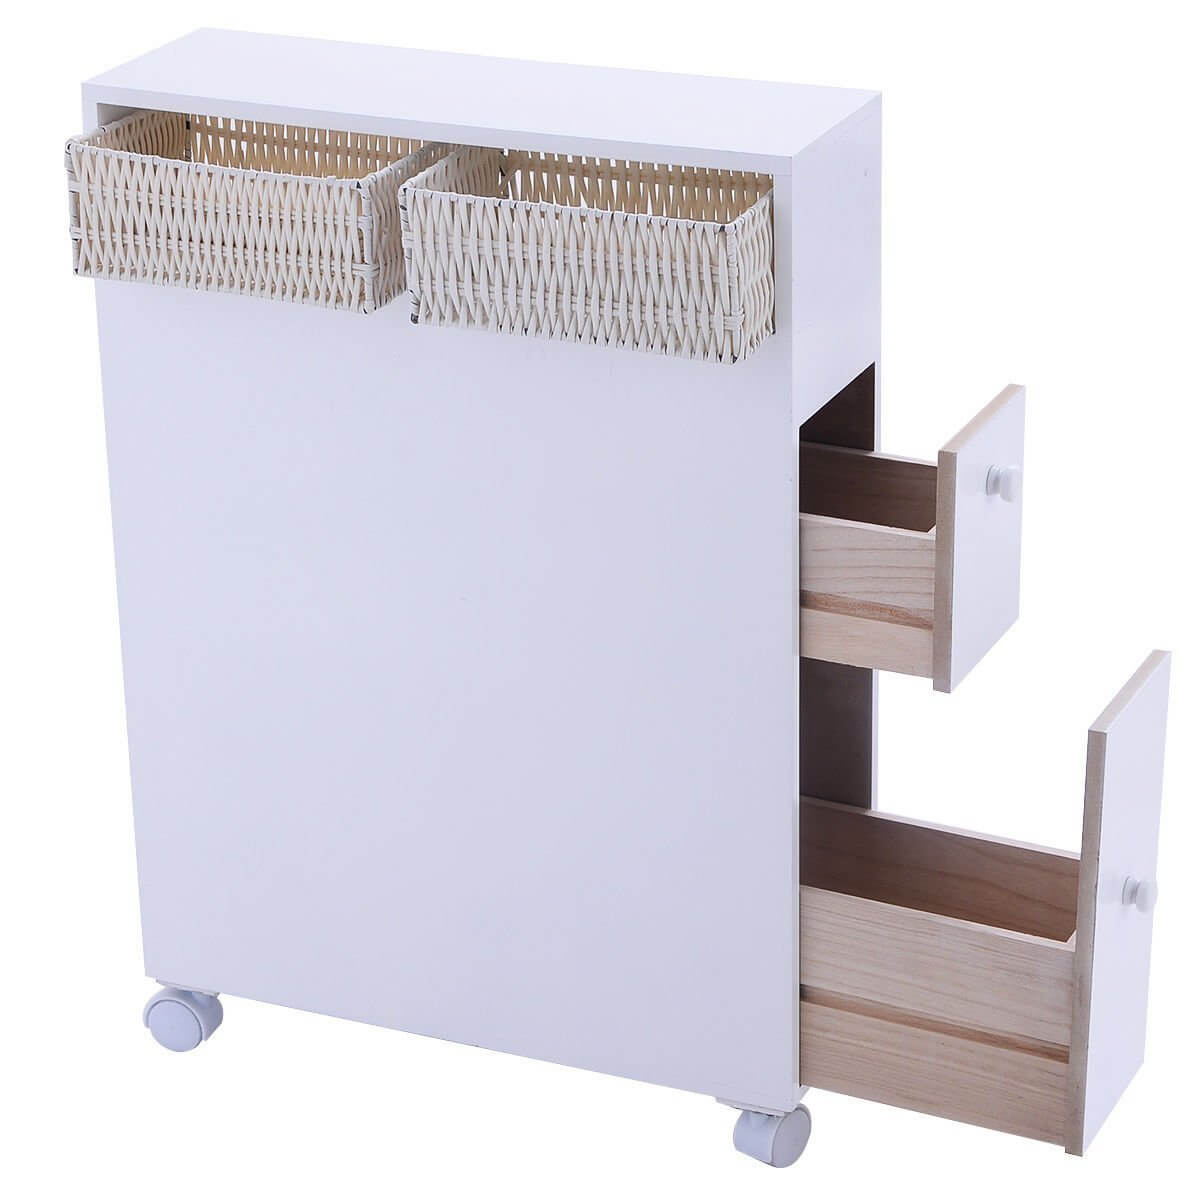 19 tangkula wood floor bathroom storage rolling cabinet holder